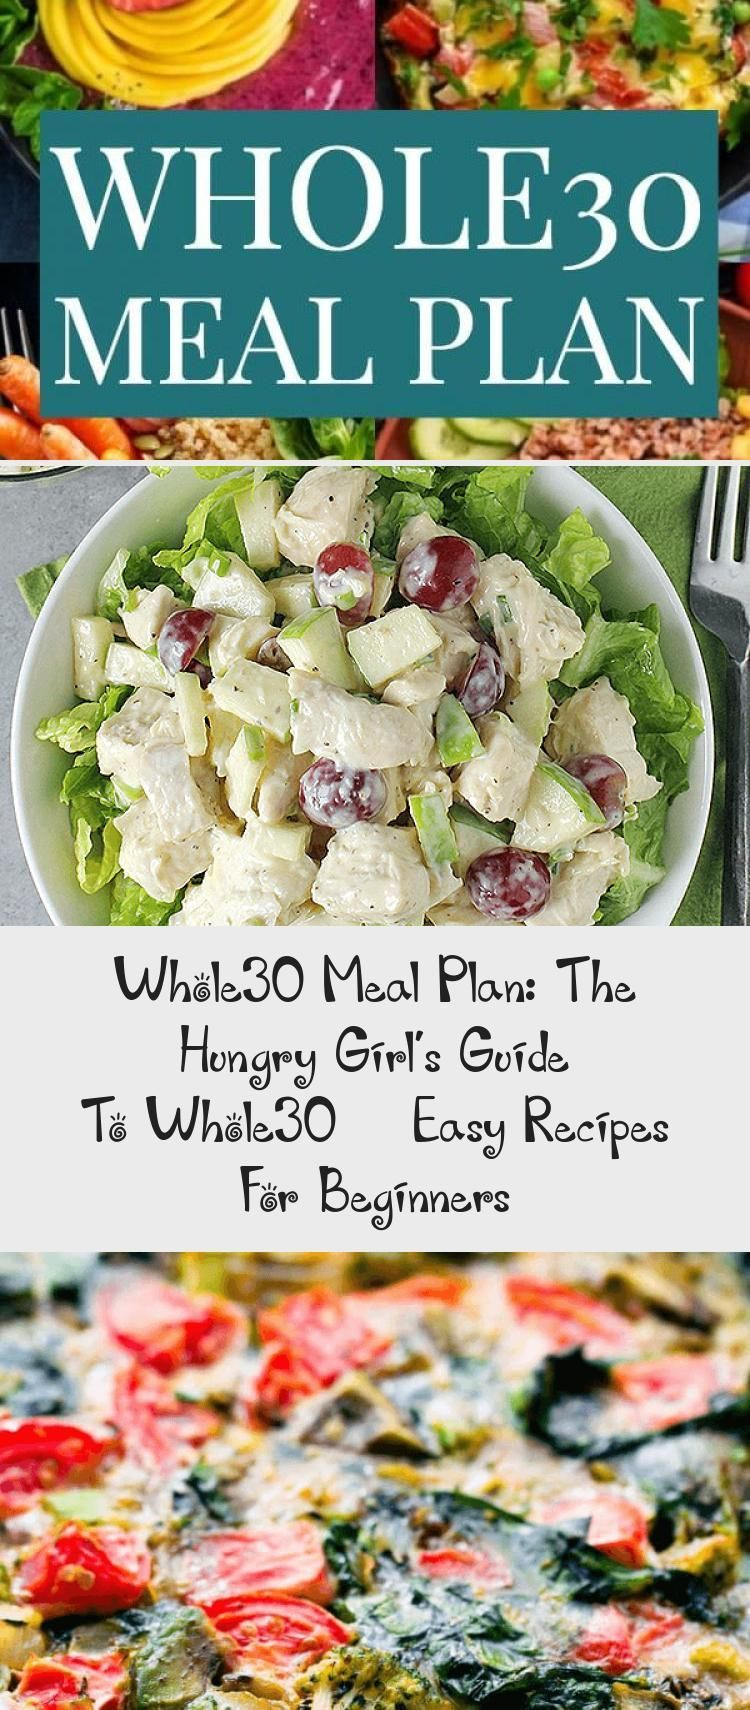 Whole30 Meal Plan The Hungry Girls Guide To Whole30  Easy Recipes For Beginners  Dinner Recipes